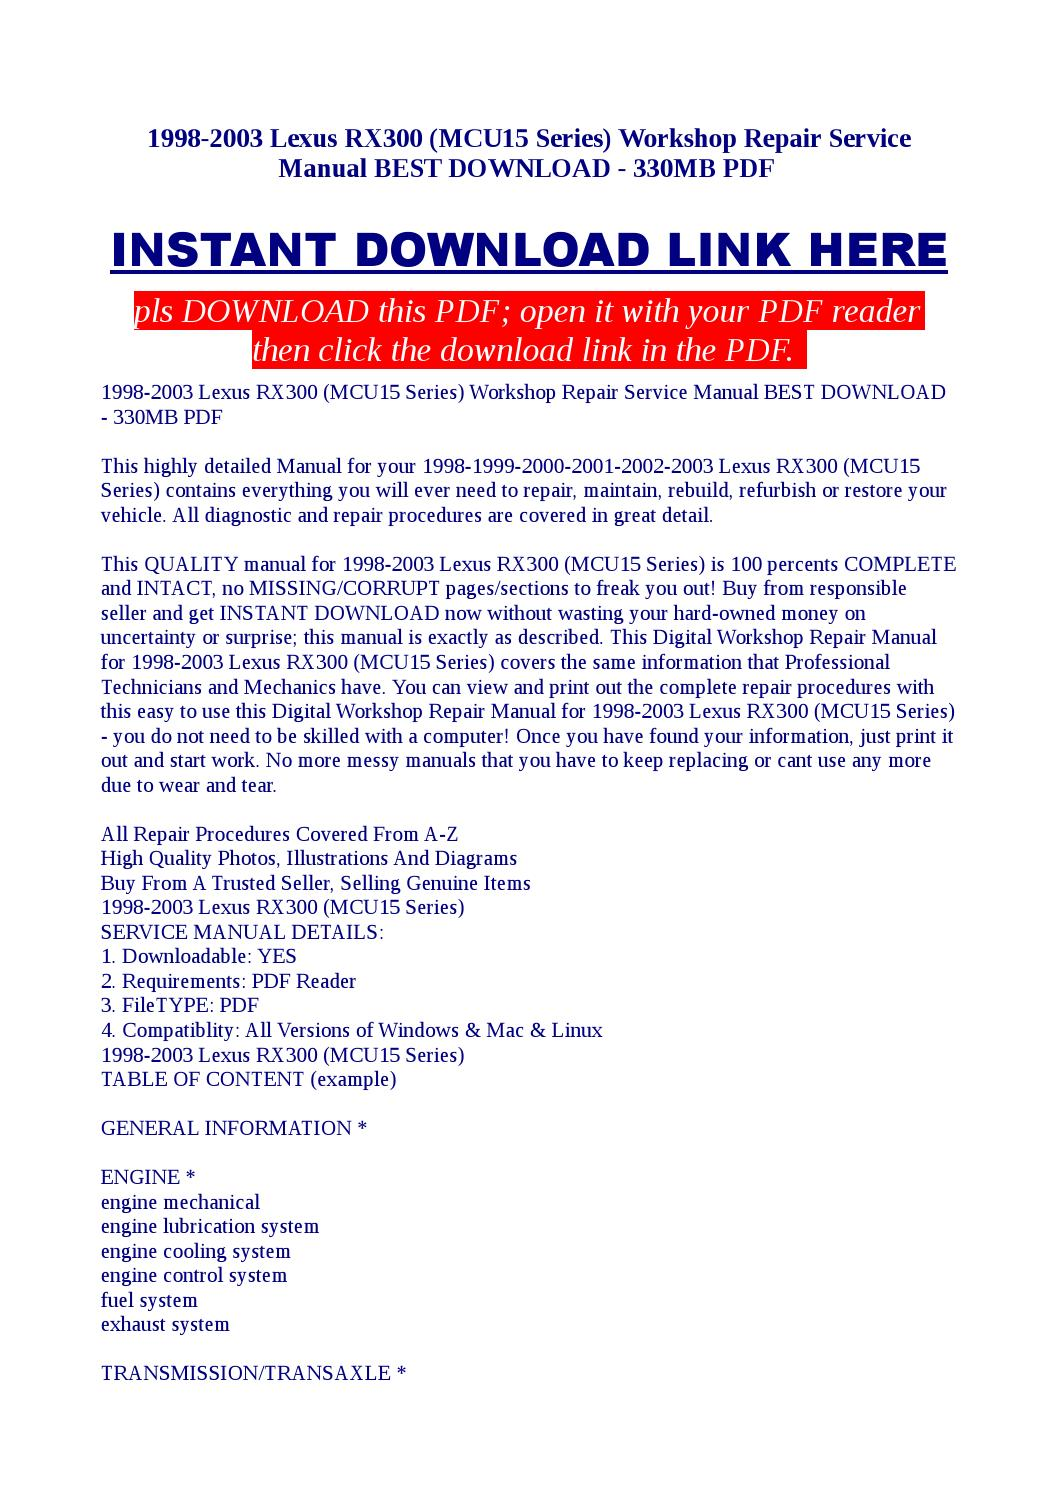 1998 2003 lexus rx300 (mcu15 series) workshop repair service manual best  download 330mb pdf by Kato Syomo - issuu